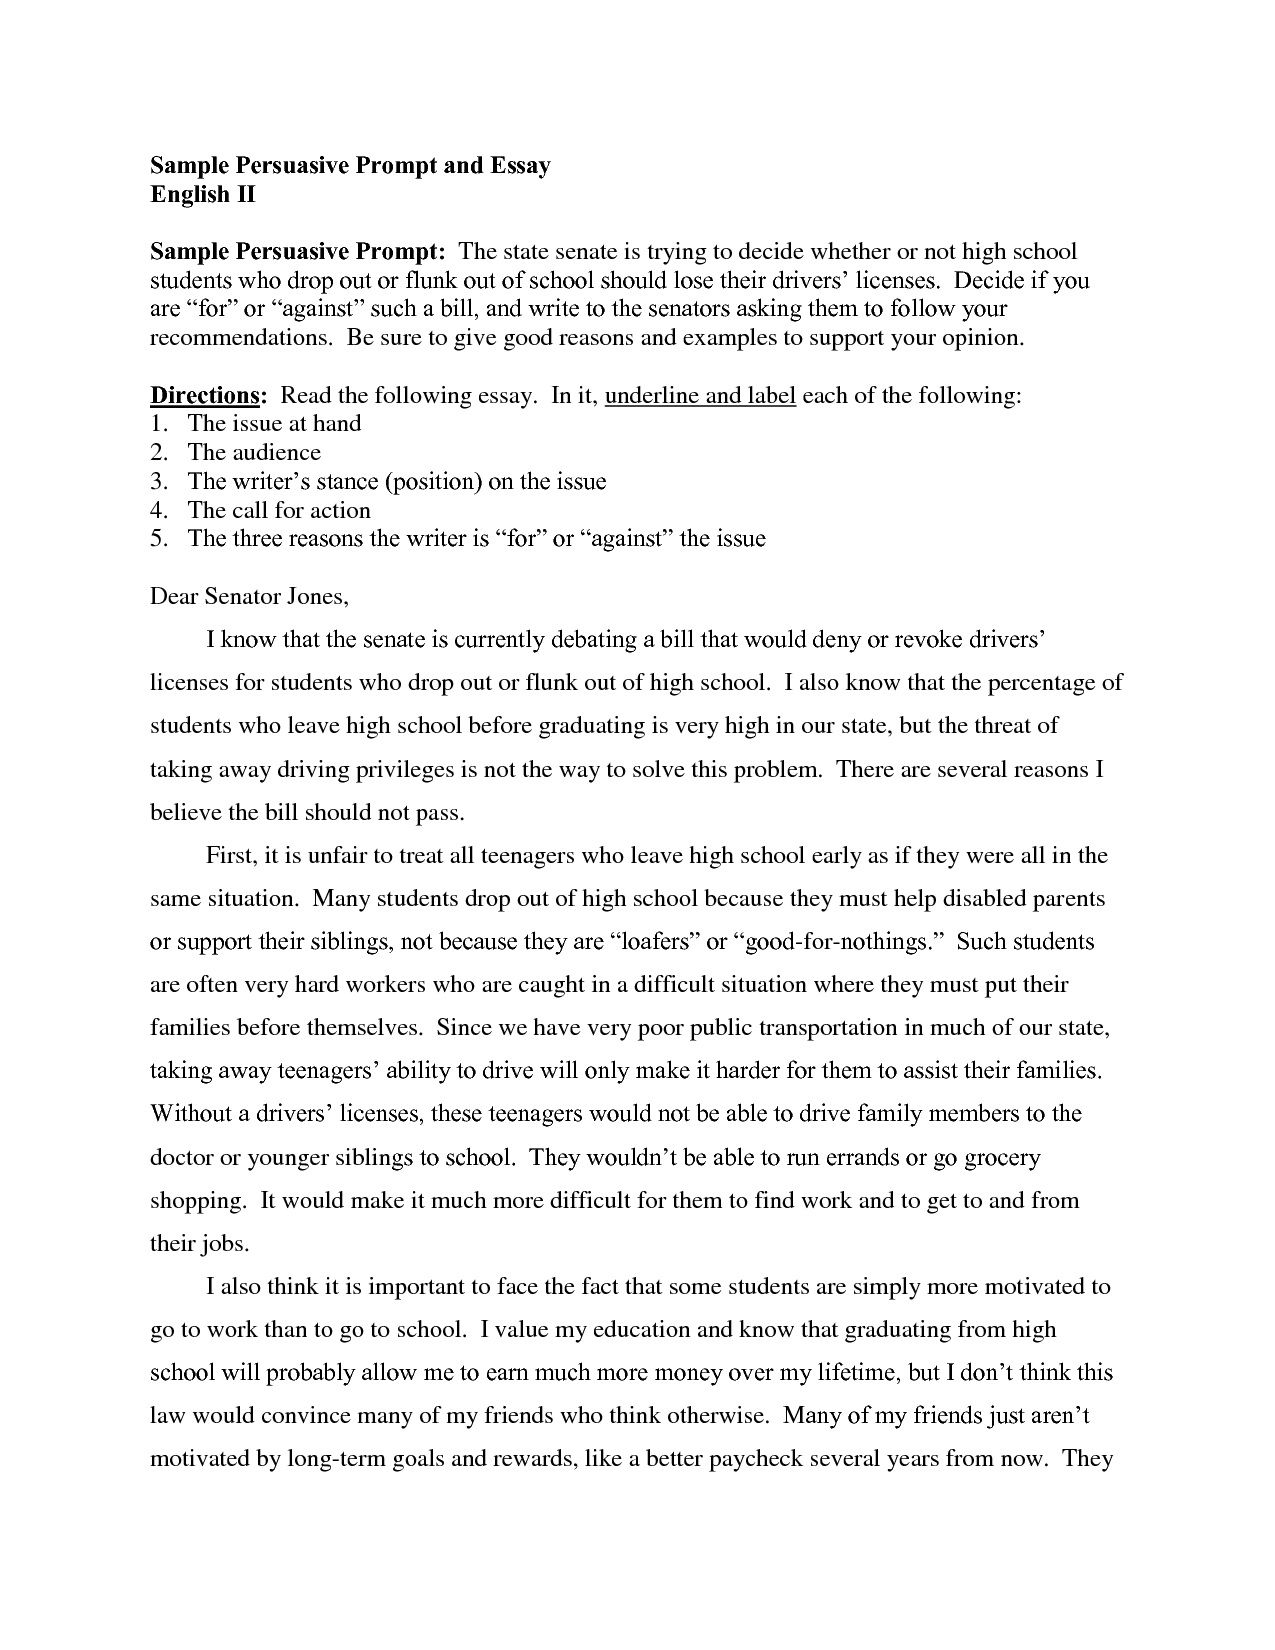 samples of persuasive essays for high school students   demire for  samples of persuasive essays for high school students   demire for  argumentative essay examples high school